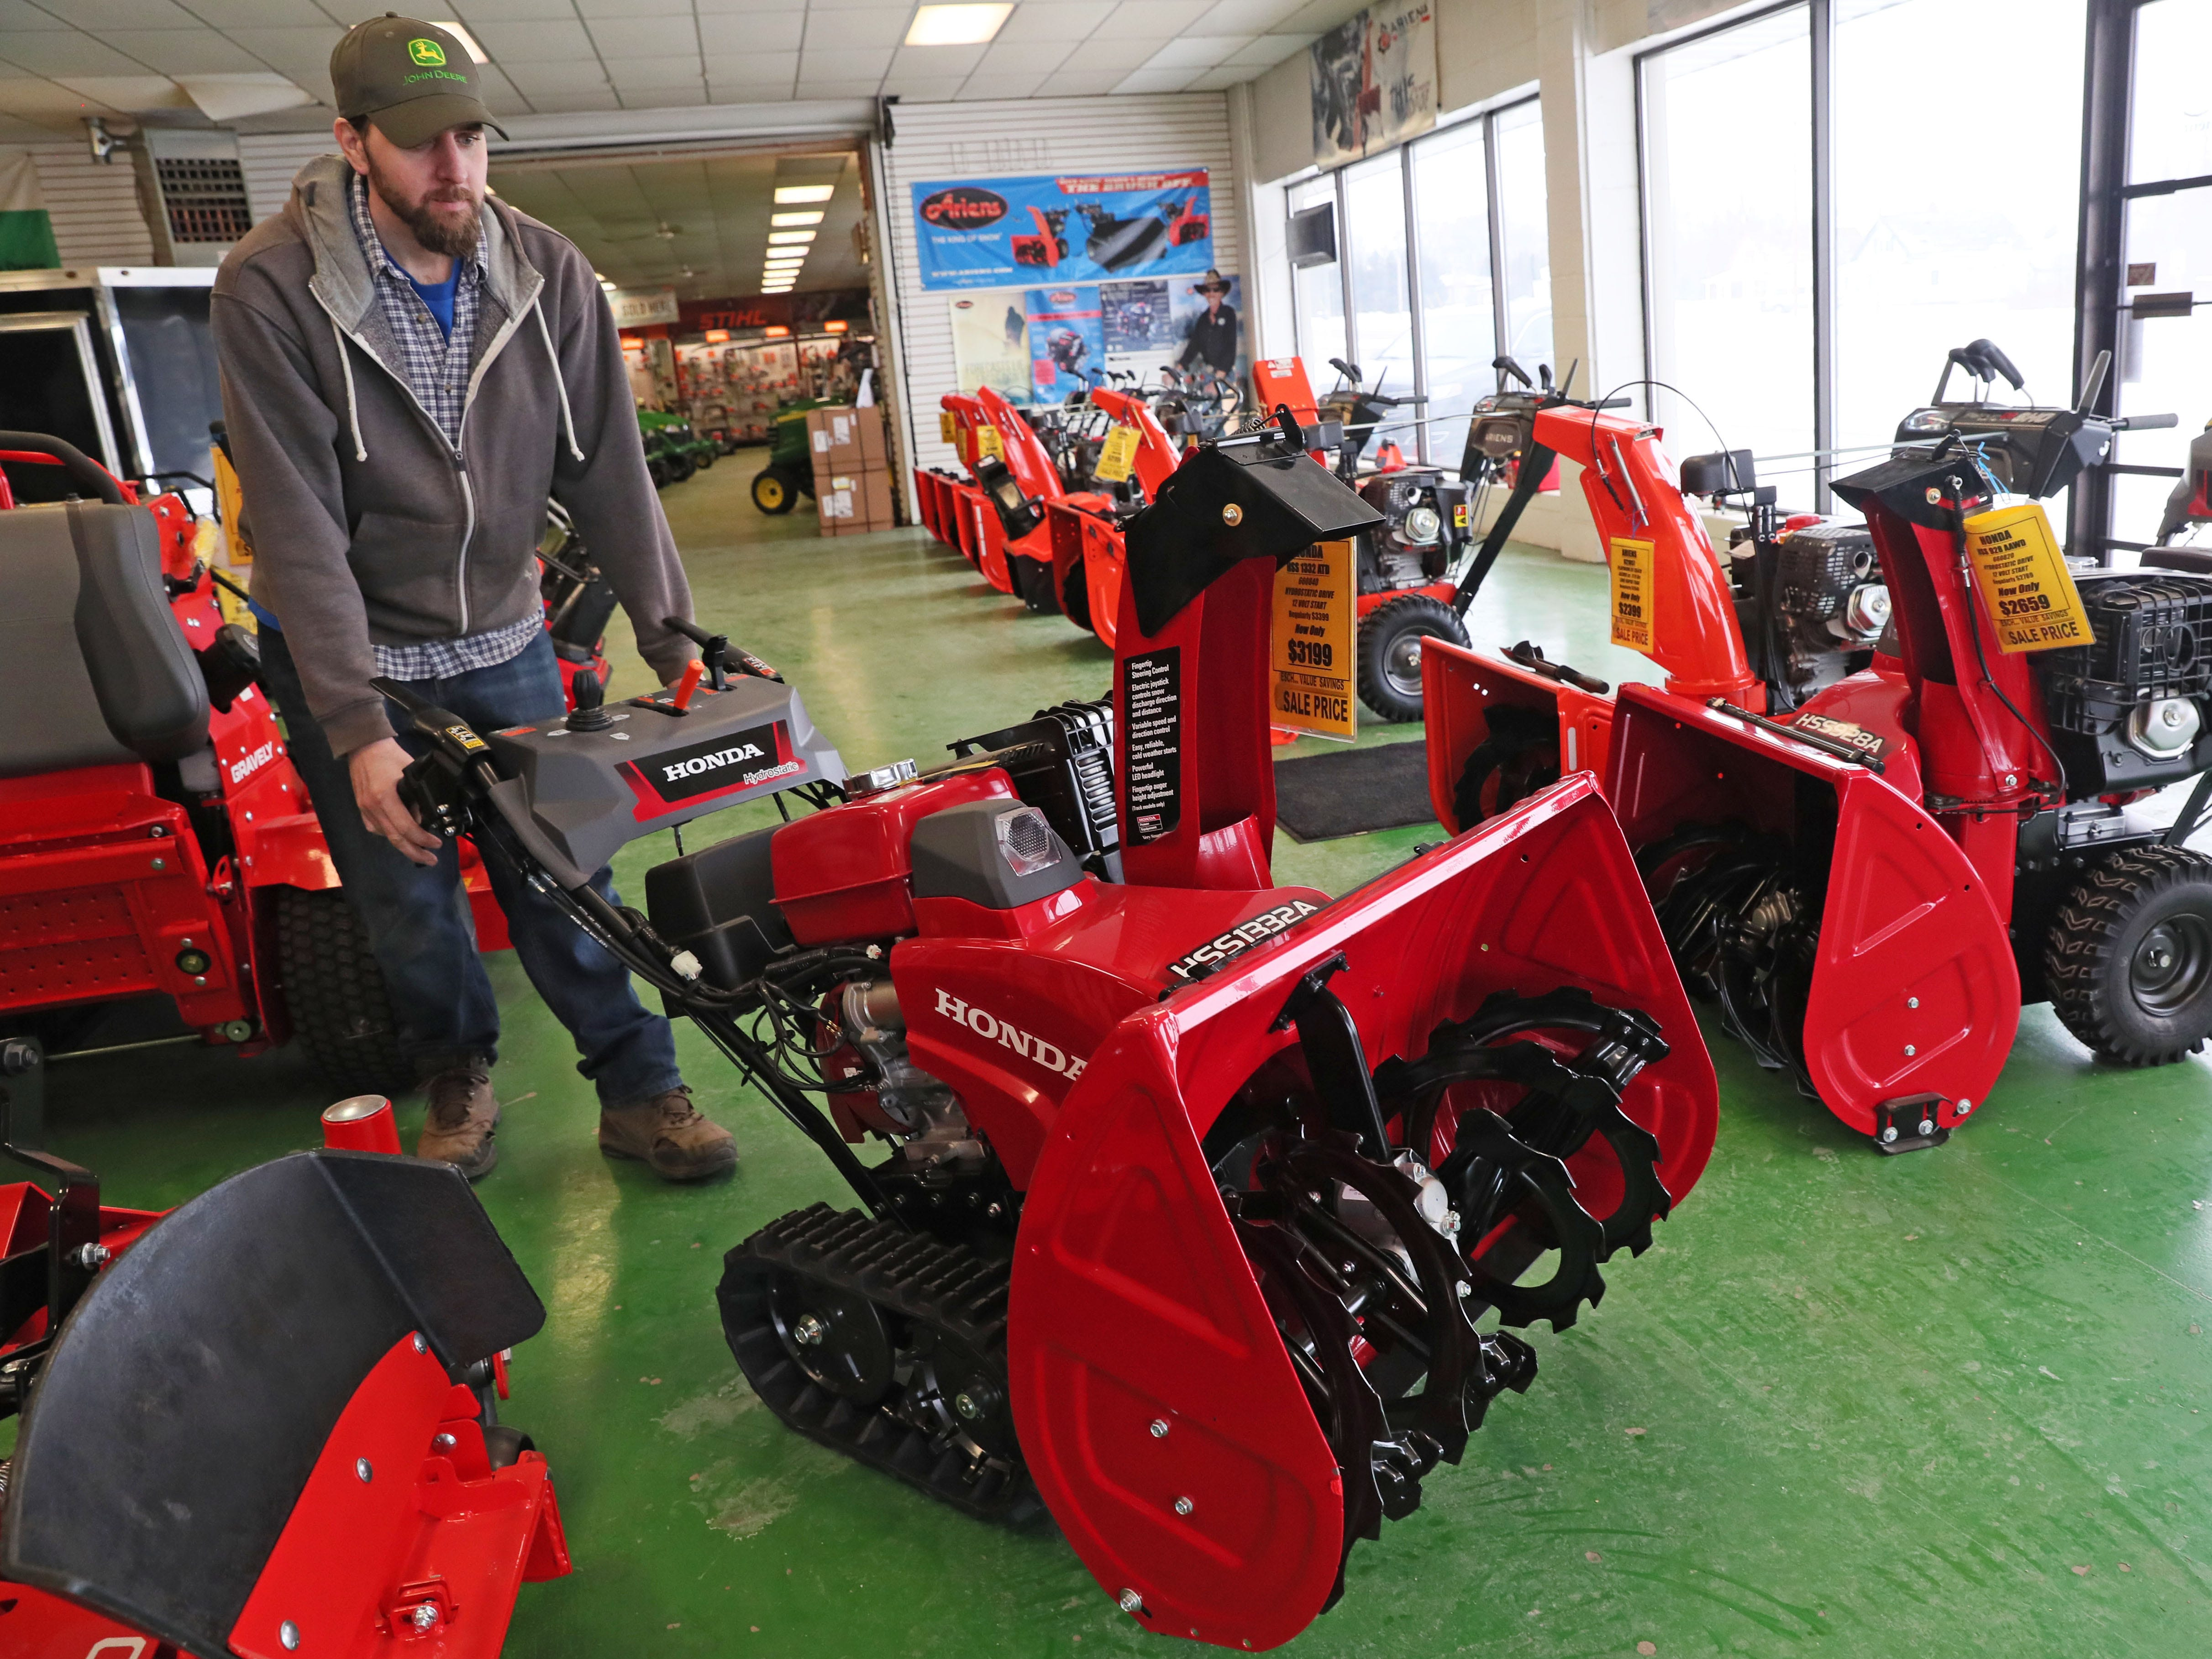 February 11, 2019 Adam Gliszinski at Esch Power Equipment in Oak Creek, moved a Honda two-stage track drive snow blower w/ 12-Volt Electric Start into the line of snowblowers for sale on the shop floor.